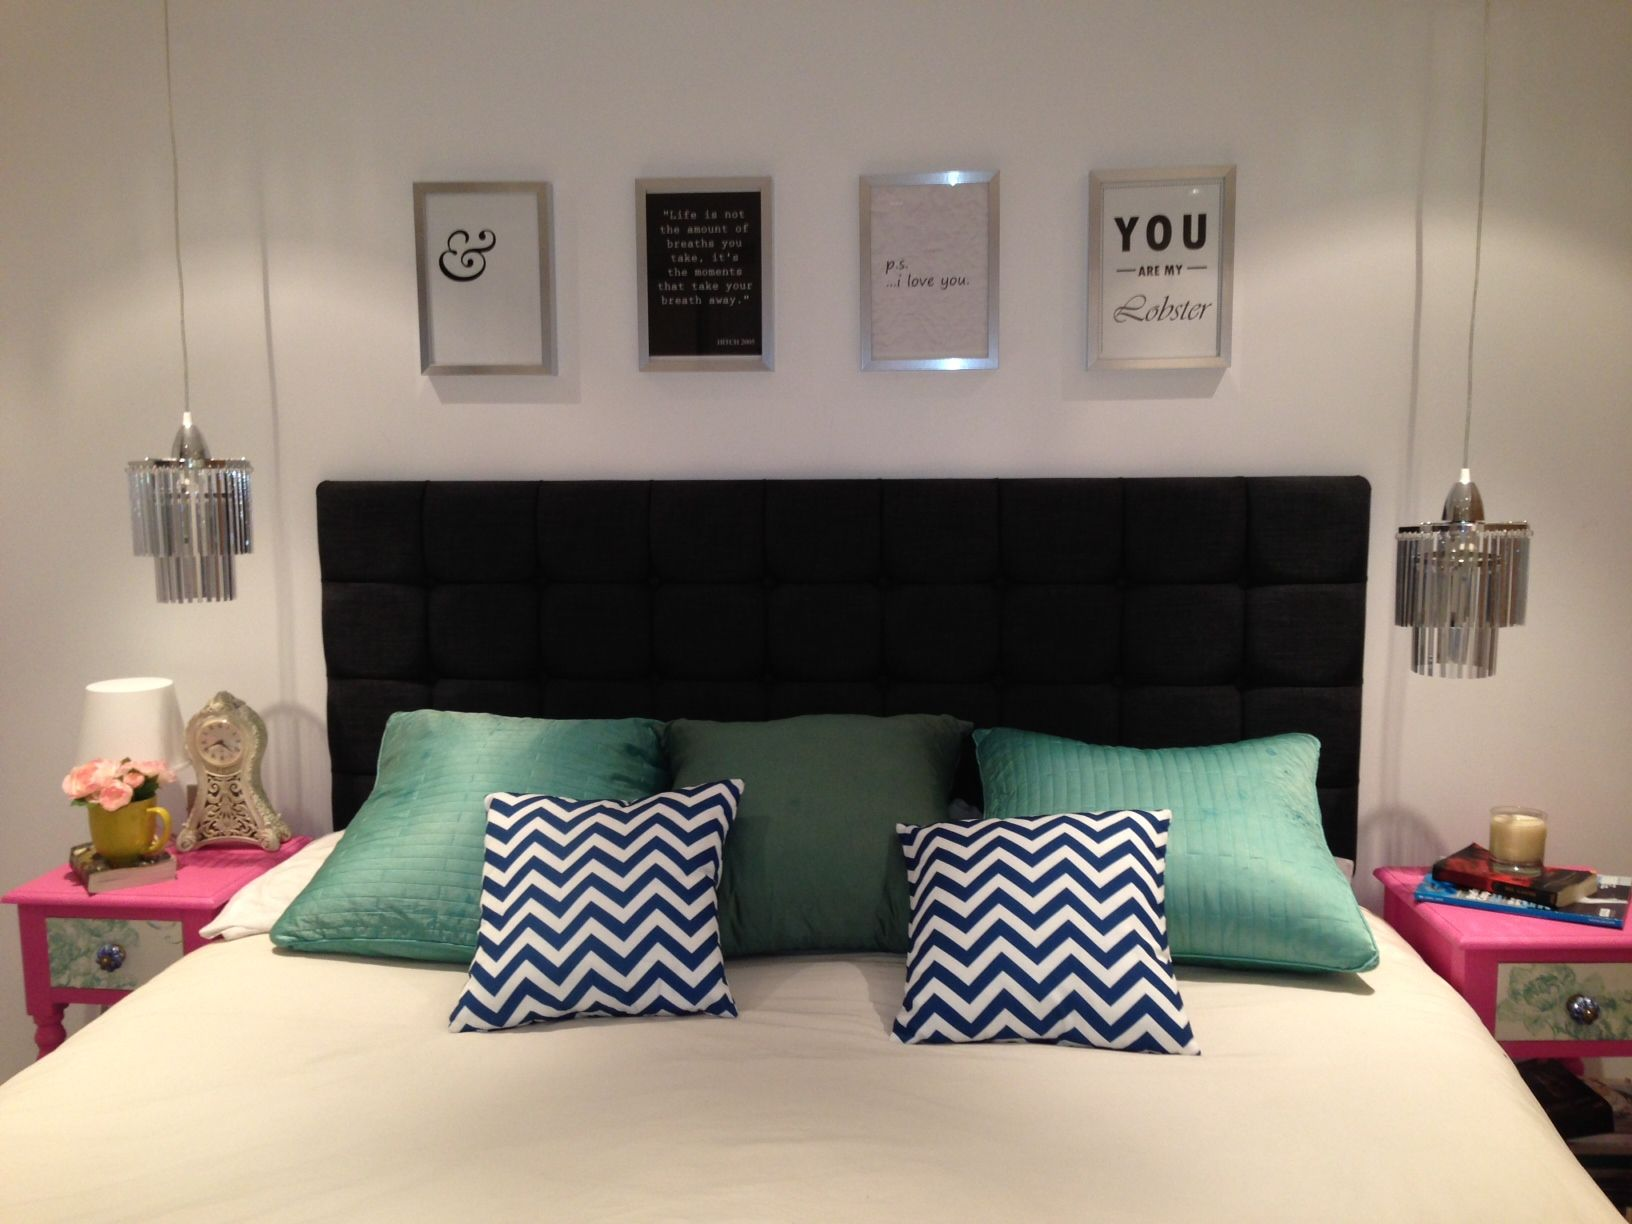 Bedroom Update: Homemade Wall Art Above Bed + Blue Chevron Cushions